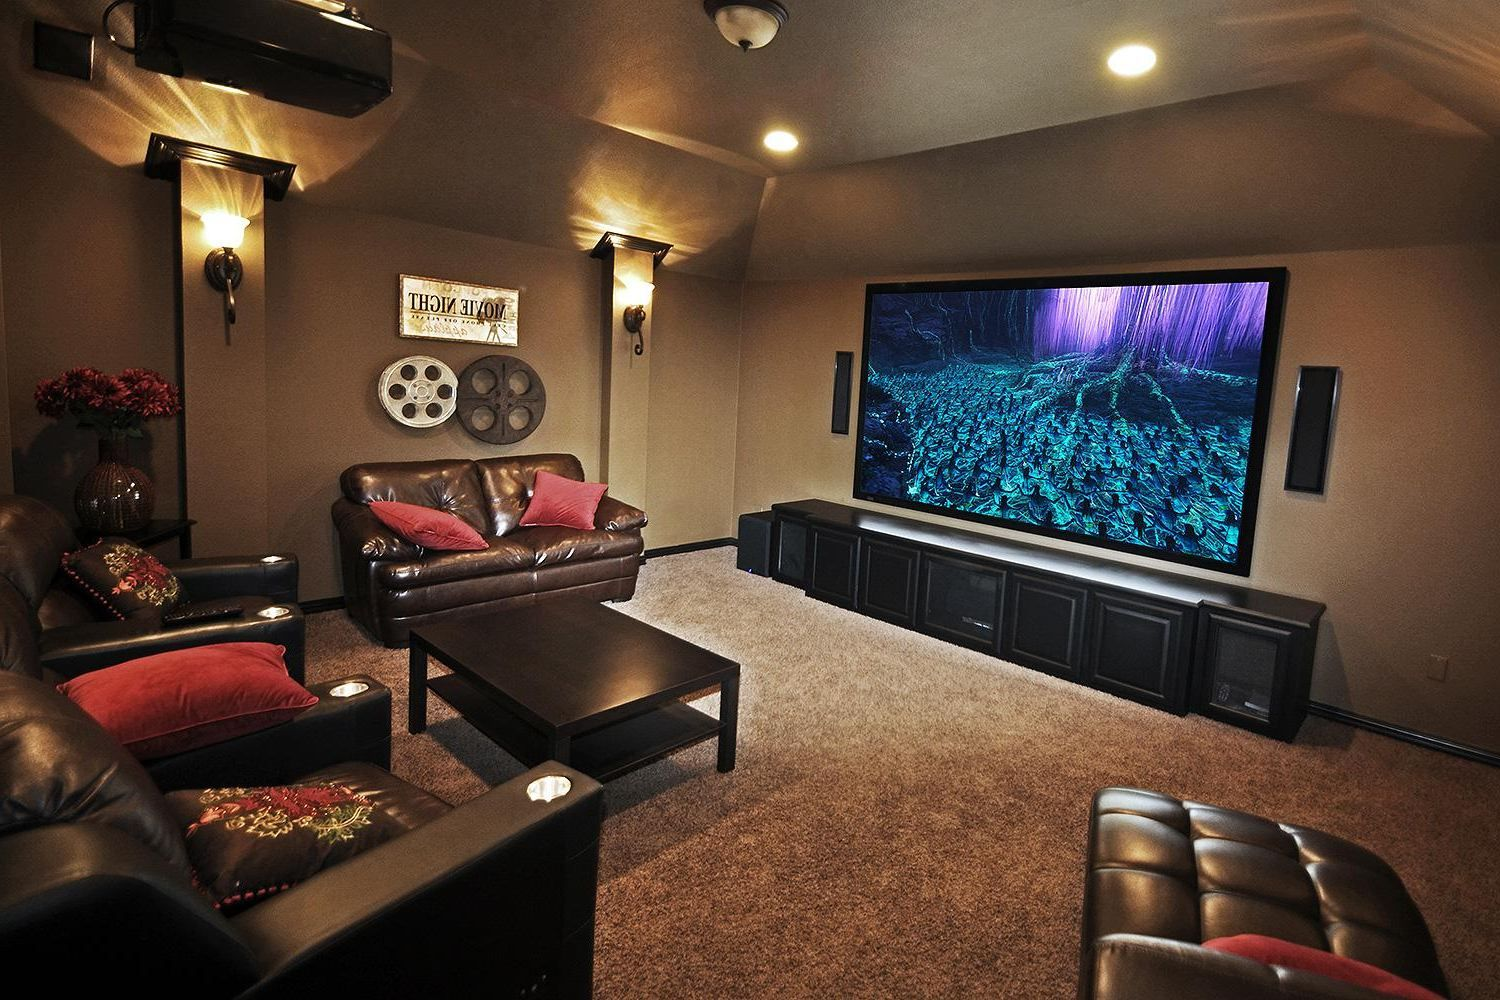 Small Home Theater Room Ideas Red Color Curve Shape Sofas Rectangle Shape  Bars Table Long Table Bar Interior Brown Wall Color Cone Wall Mount Lamp :  Home ...